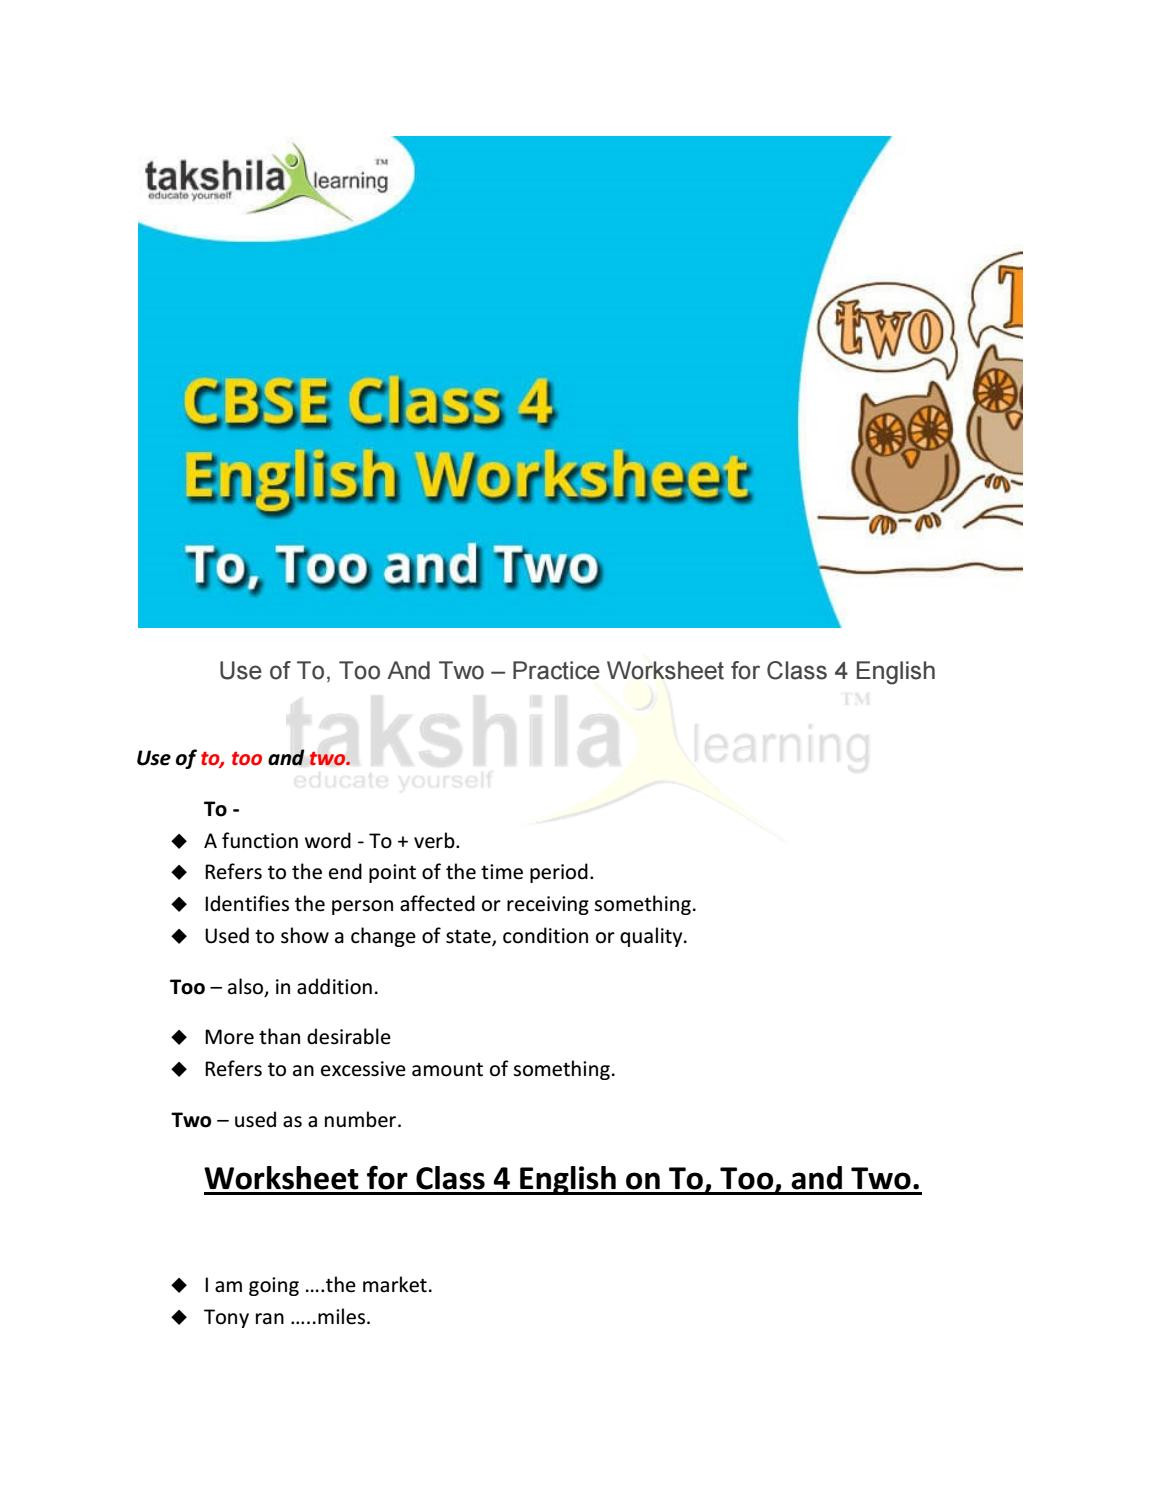 To too Two Worksheet 4th Class English Use Of to too and Two Practice Worksheet